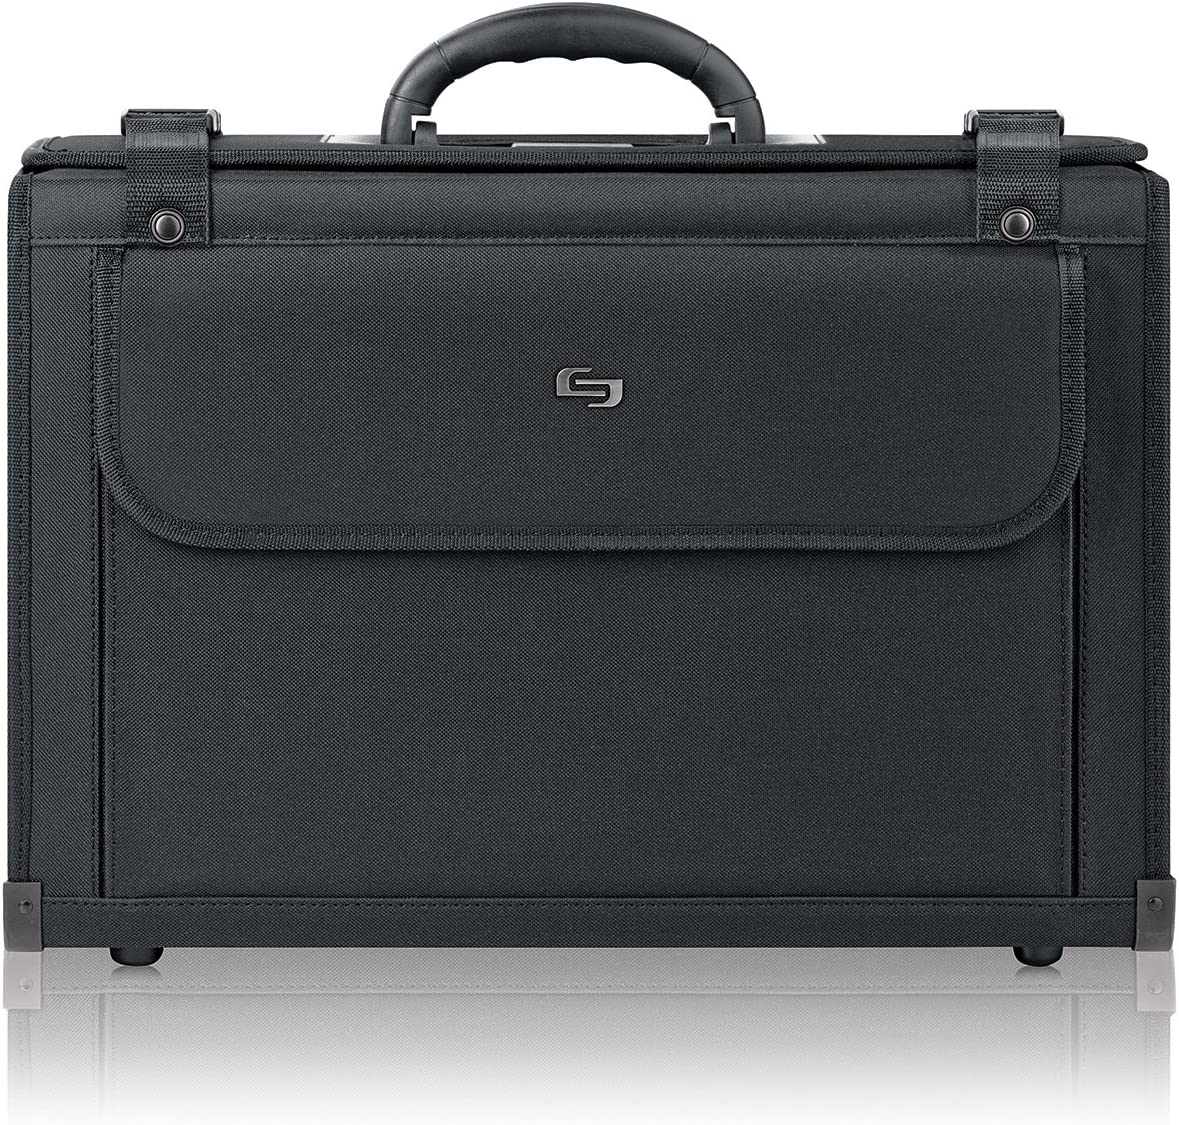 Solo Classic 16 Inch Laptop Catalog Case, Black